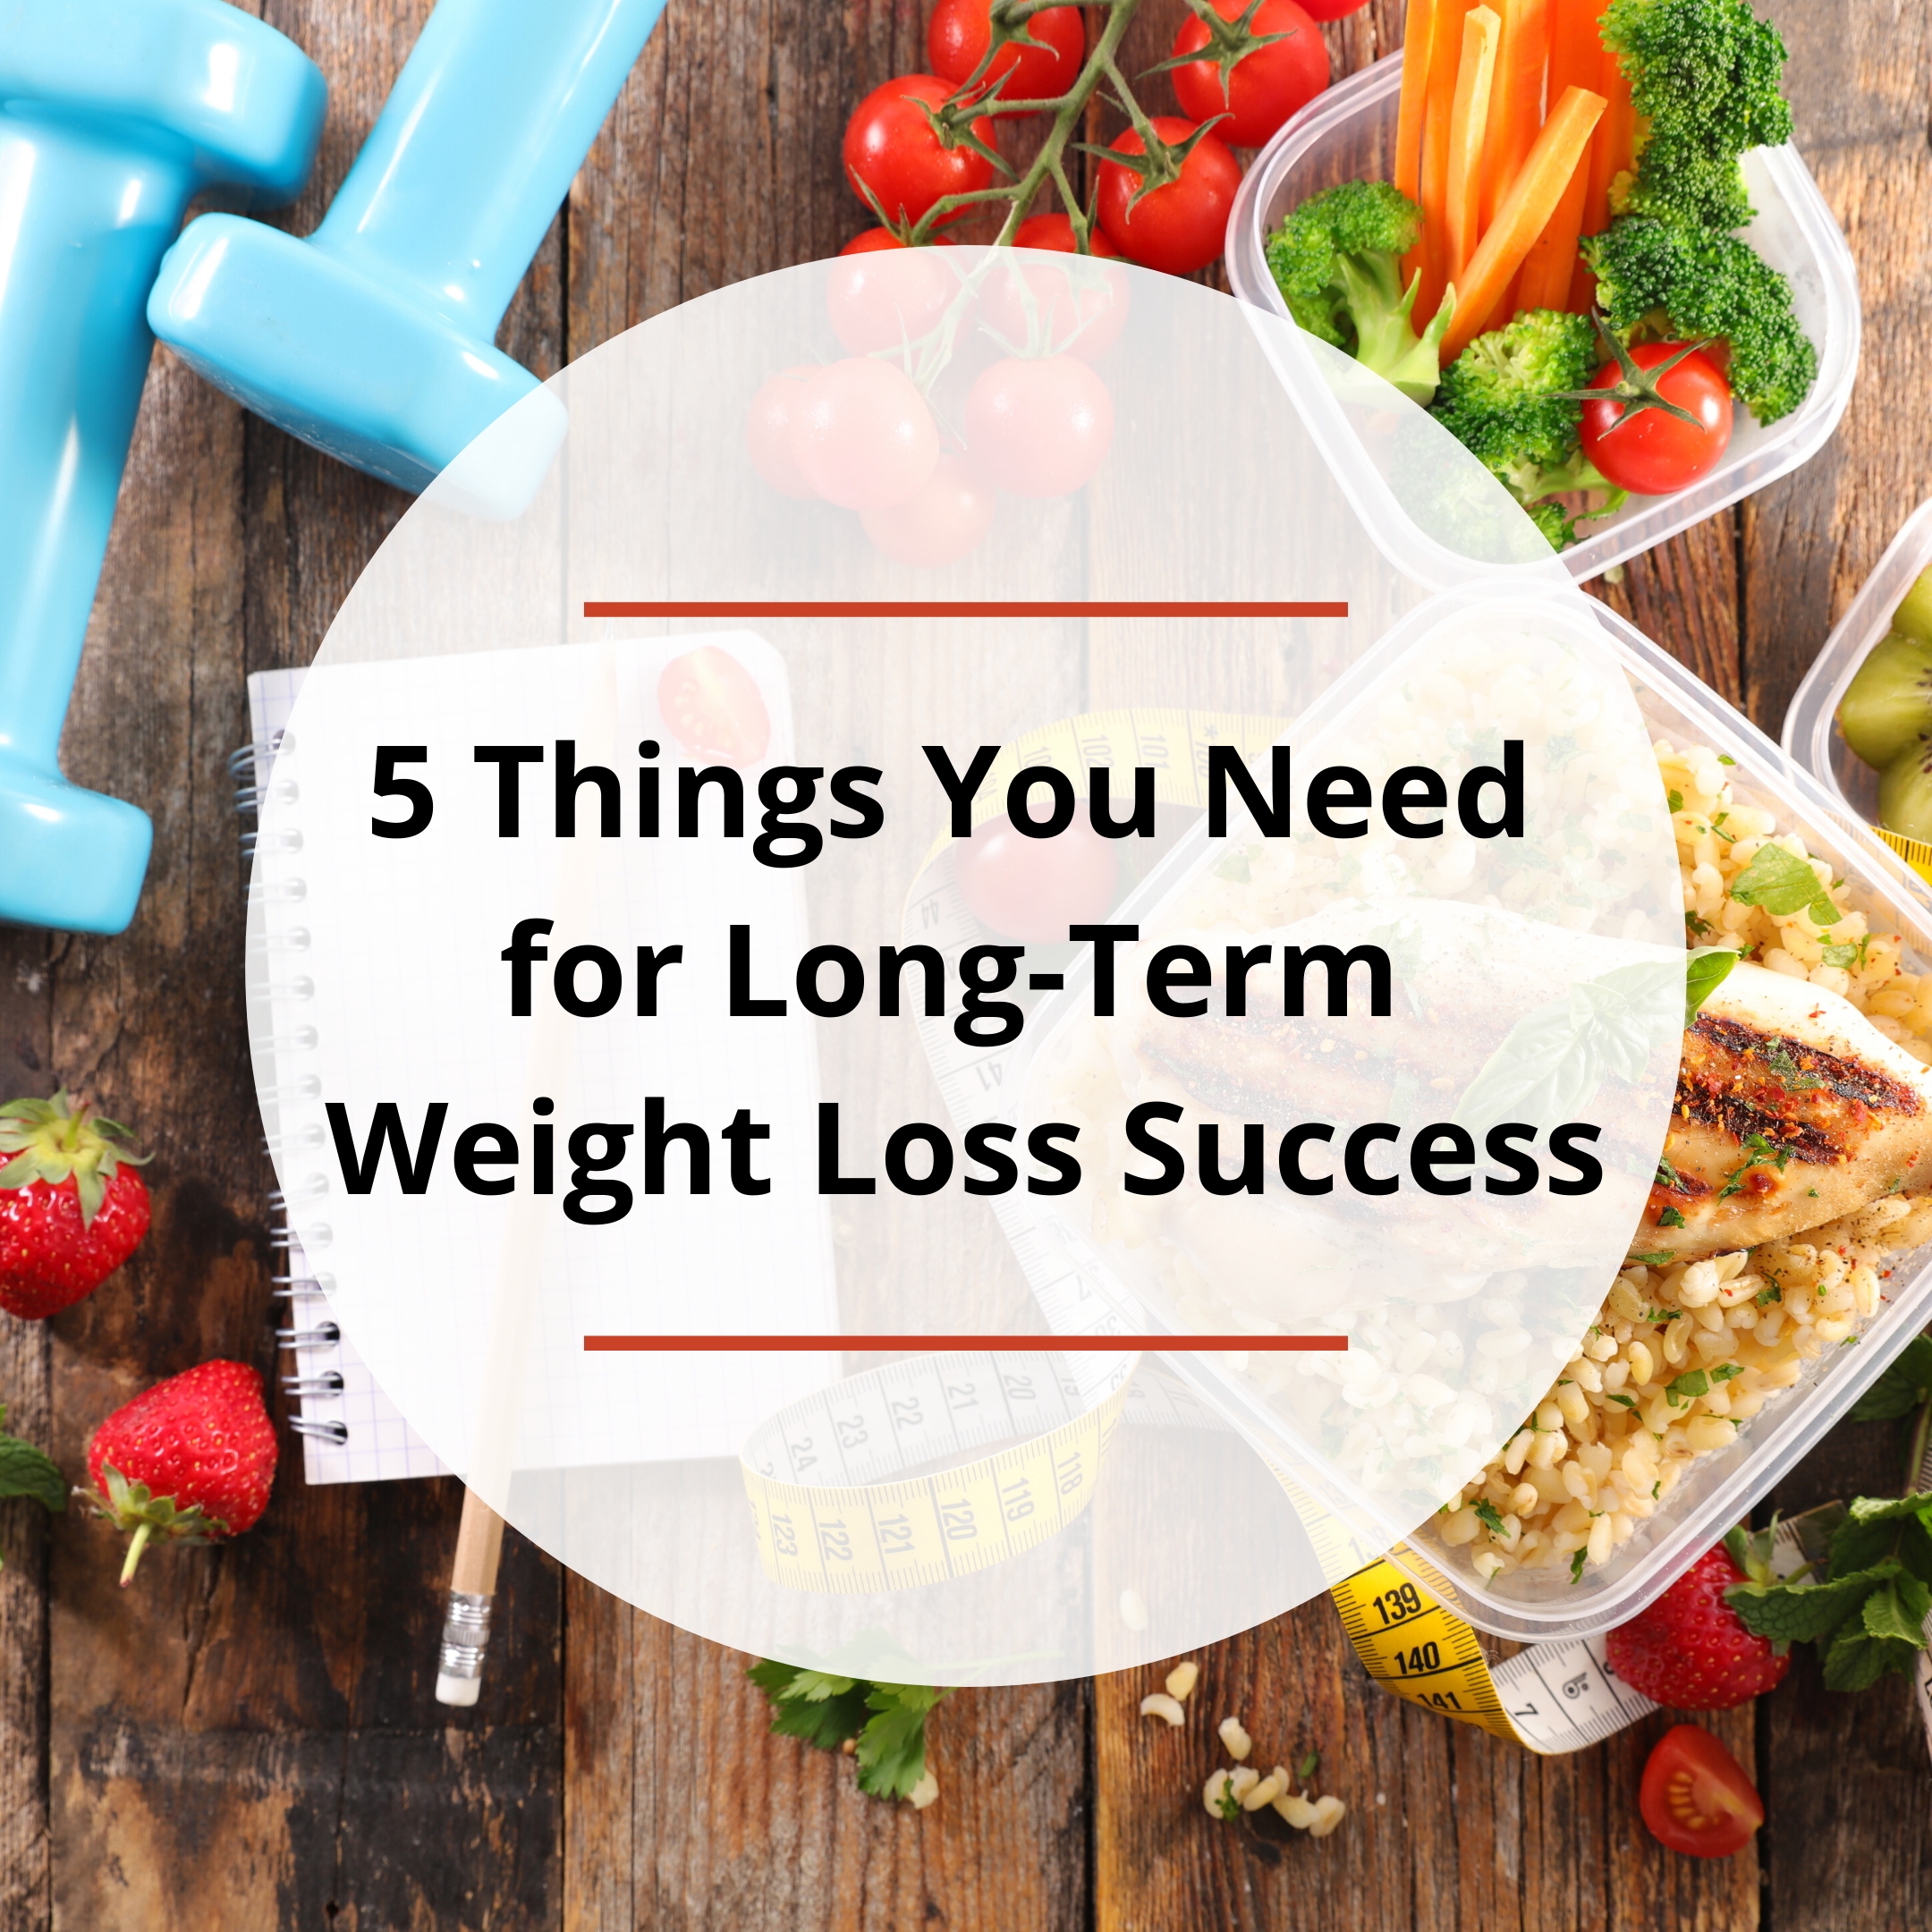 5 Things You Need for Long-Term Weight Loss Success